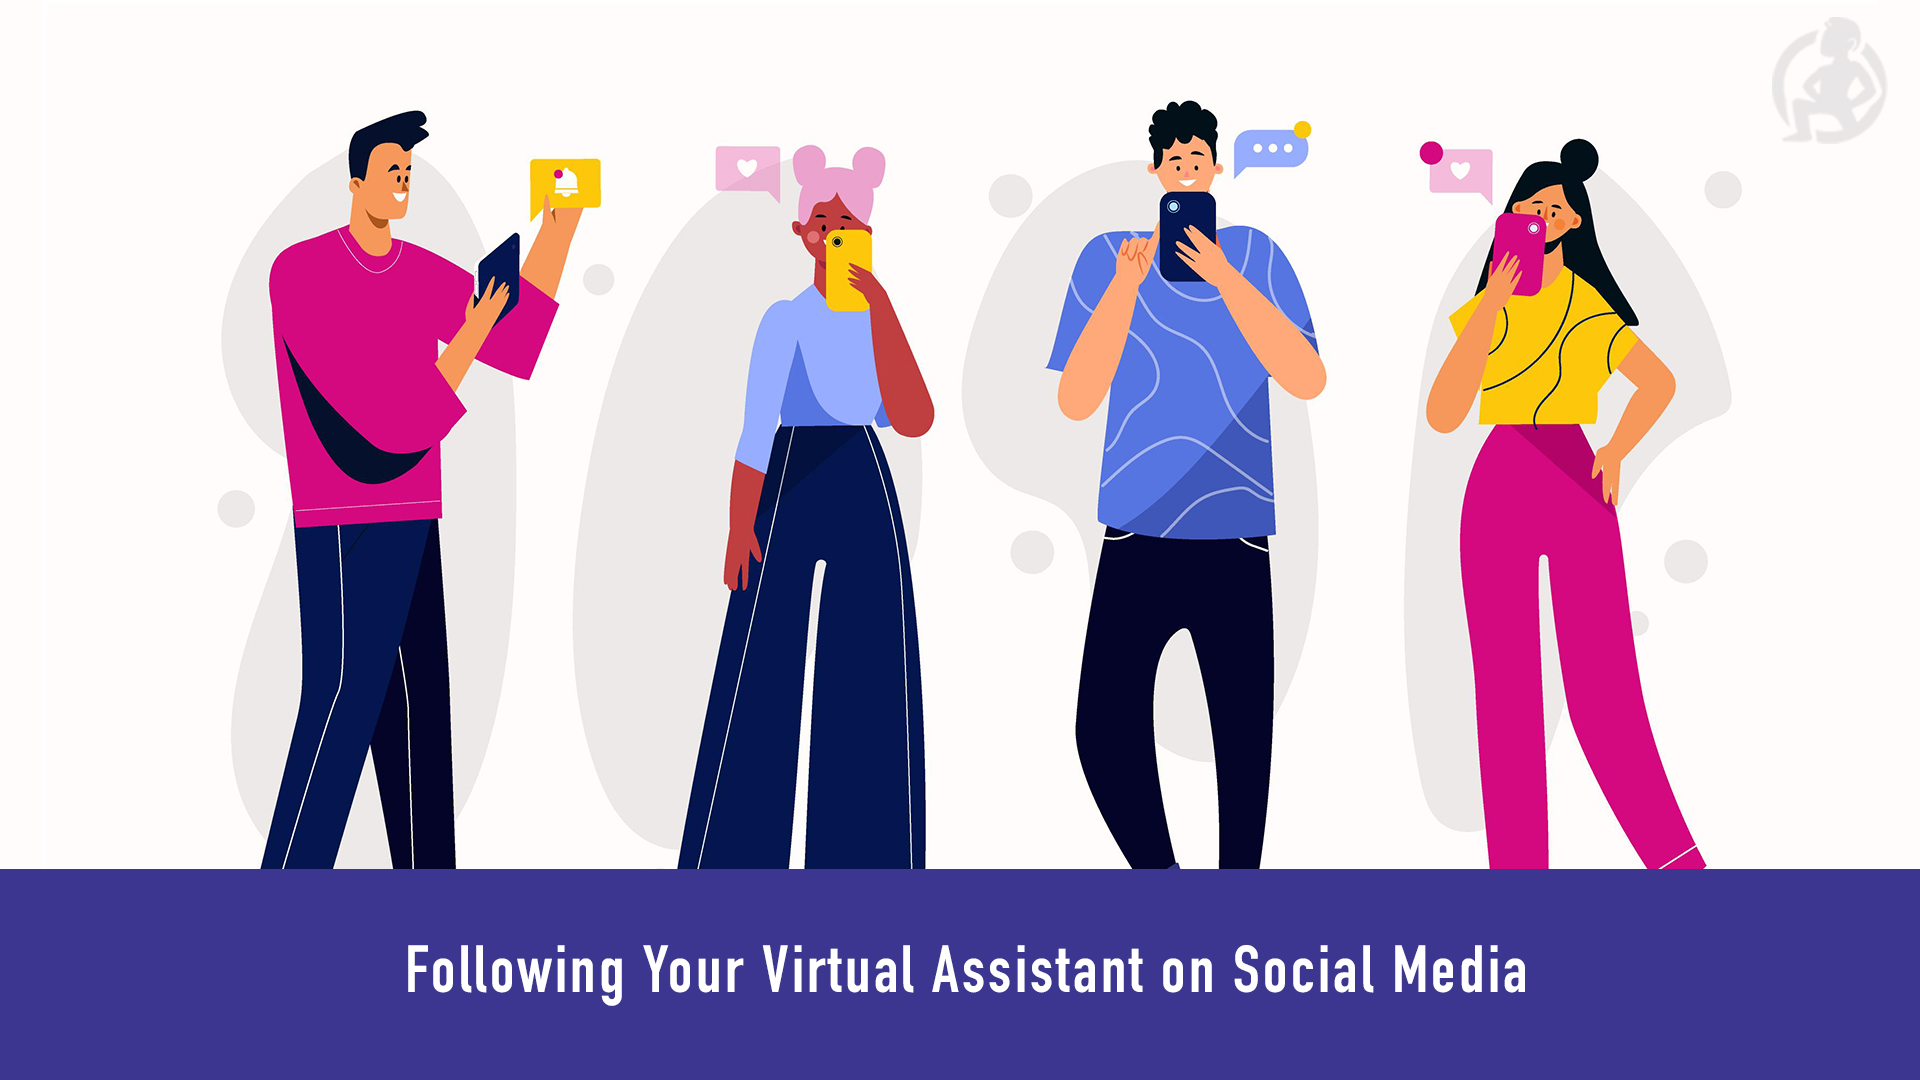 Following Your Virtual Assistant on Social Media